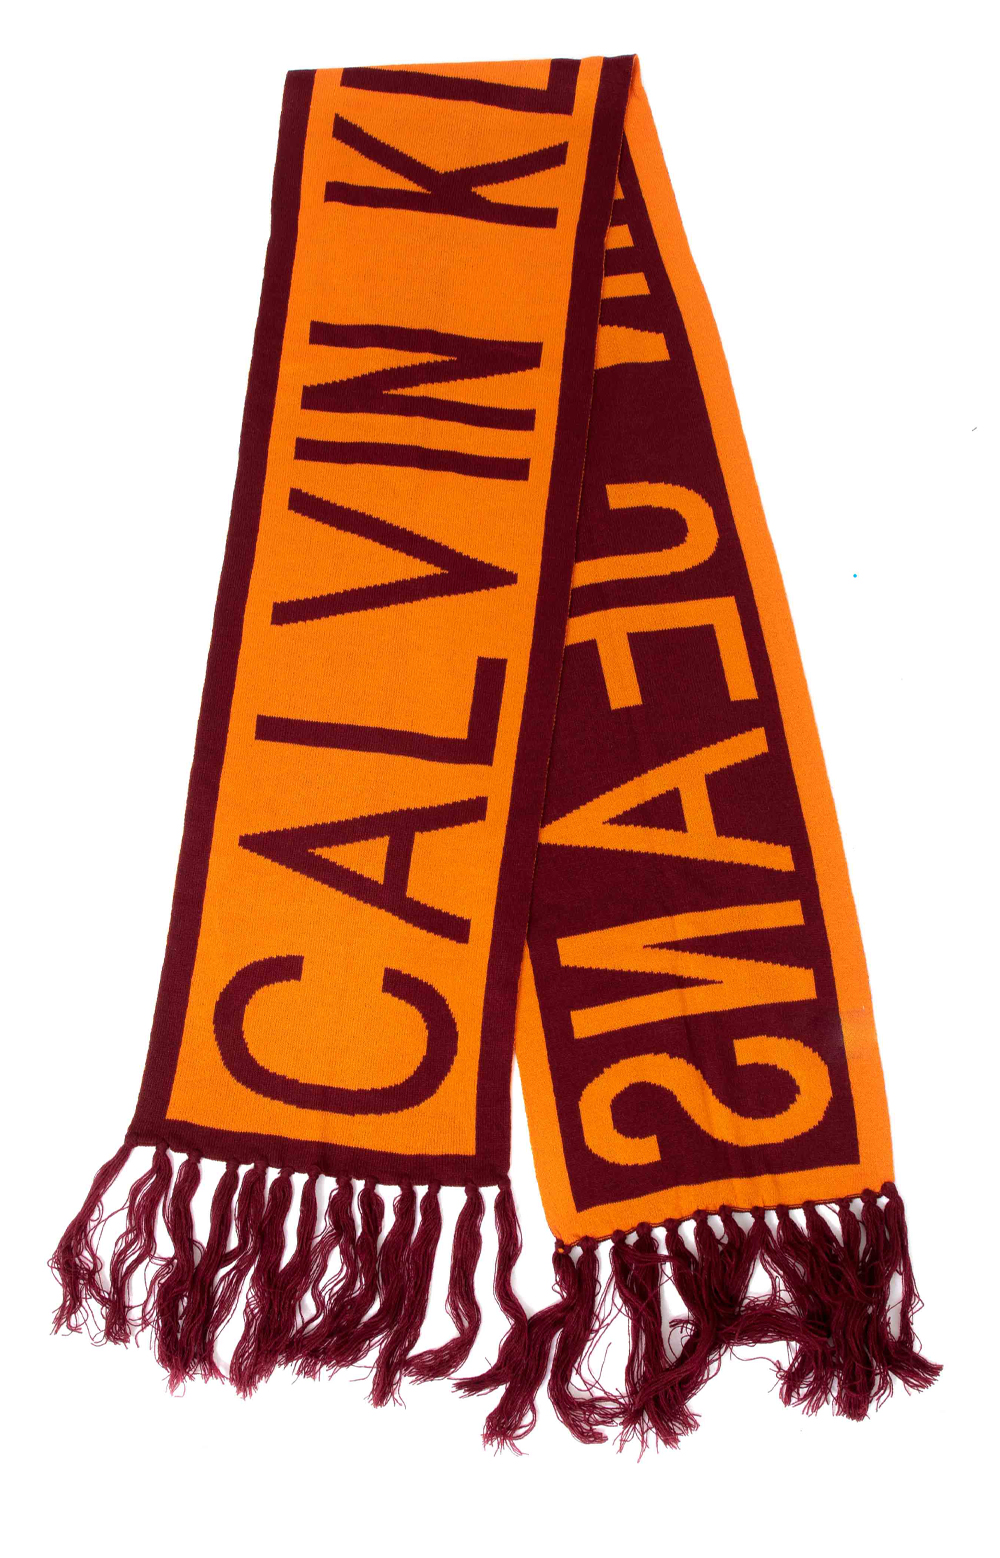 CK Logo Scarf - Orange Tiger